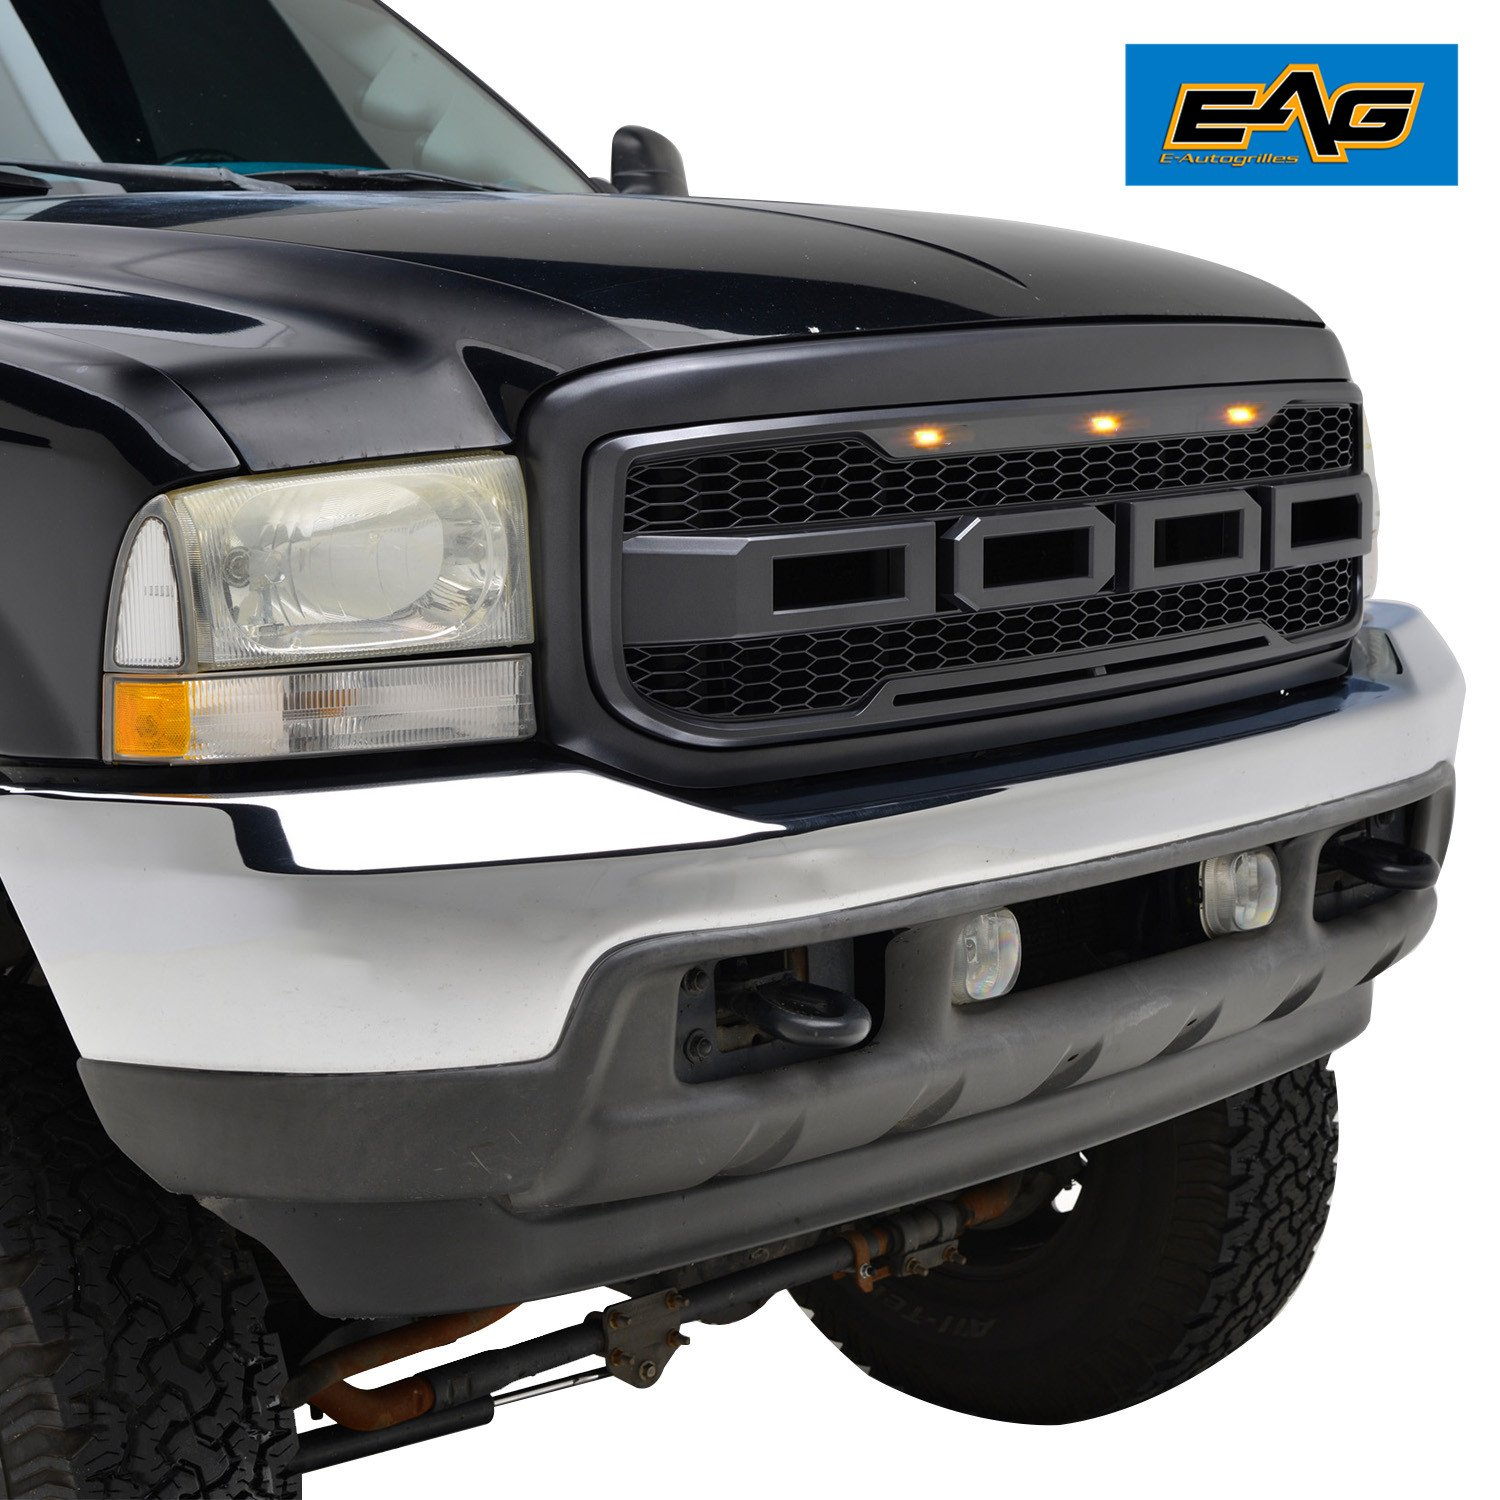 85off Eag Replacement Abs Grille For 99 04 Ford Super Duty F 250 2004 Led Lighting